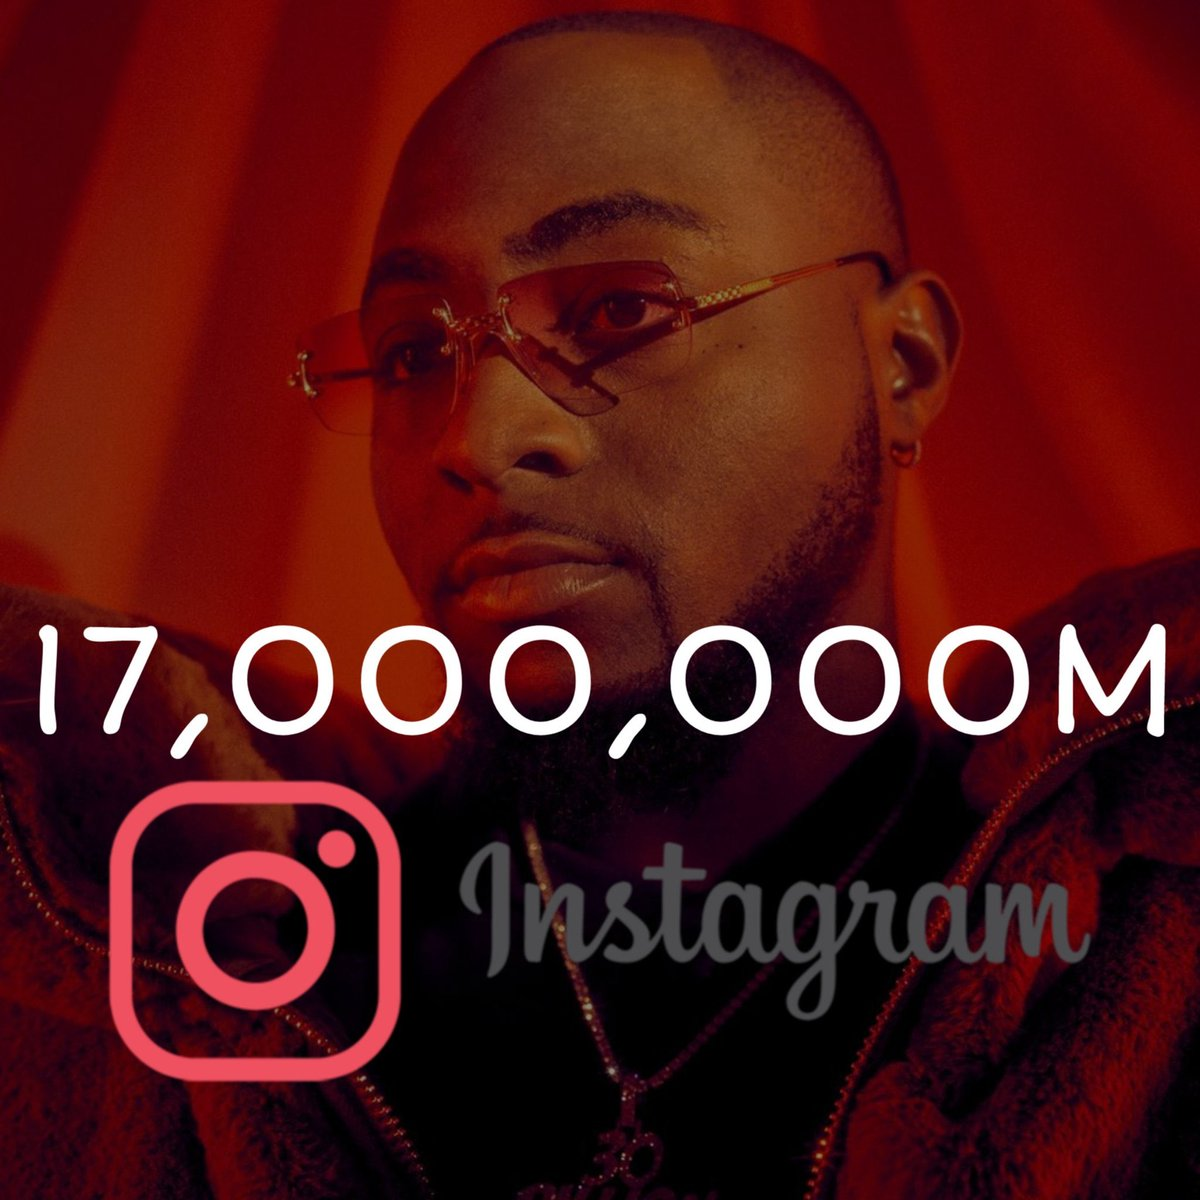 The more he UNFOLLOWs the more he gains FOLLOWERS    Who's that king 👑 ?  He hasn't posted anything on his social media account for 12 days now and followers keep increasing.  #17M fucking followers, the biggest African artist ever...  OBO 1  #WeMissDavido   #plscomeback https://t.co/zRntSDwqHW